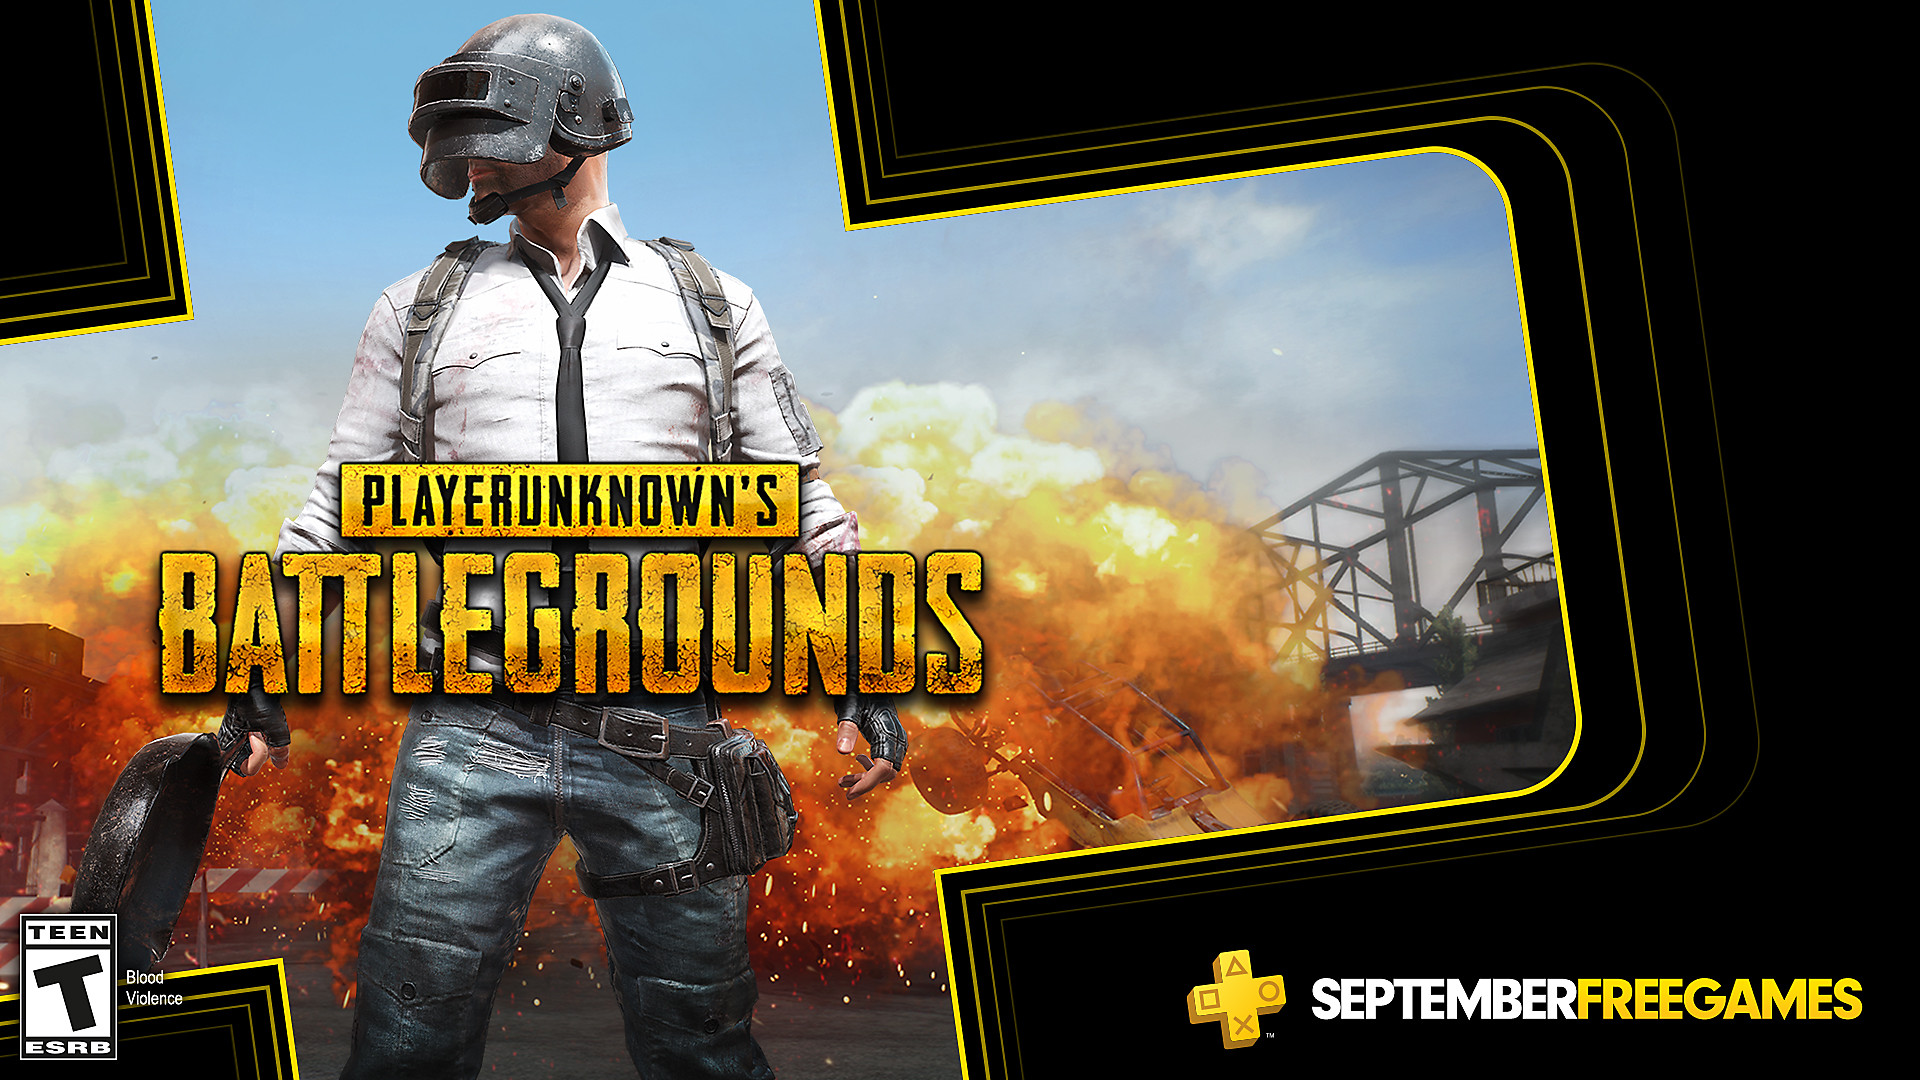 Click here to get PLAYERUNKNOWN'S BATTLEGROUNDS free from the PlayStation Store for PlayStation Plus members